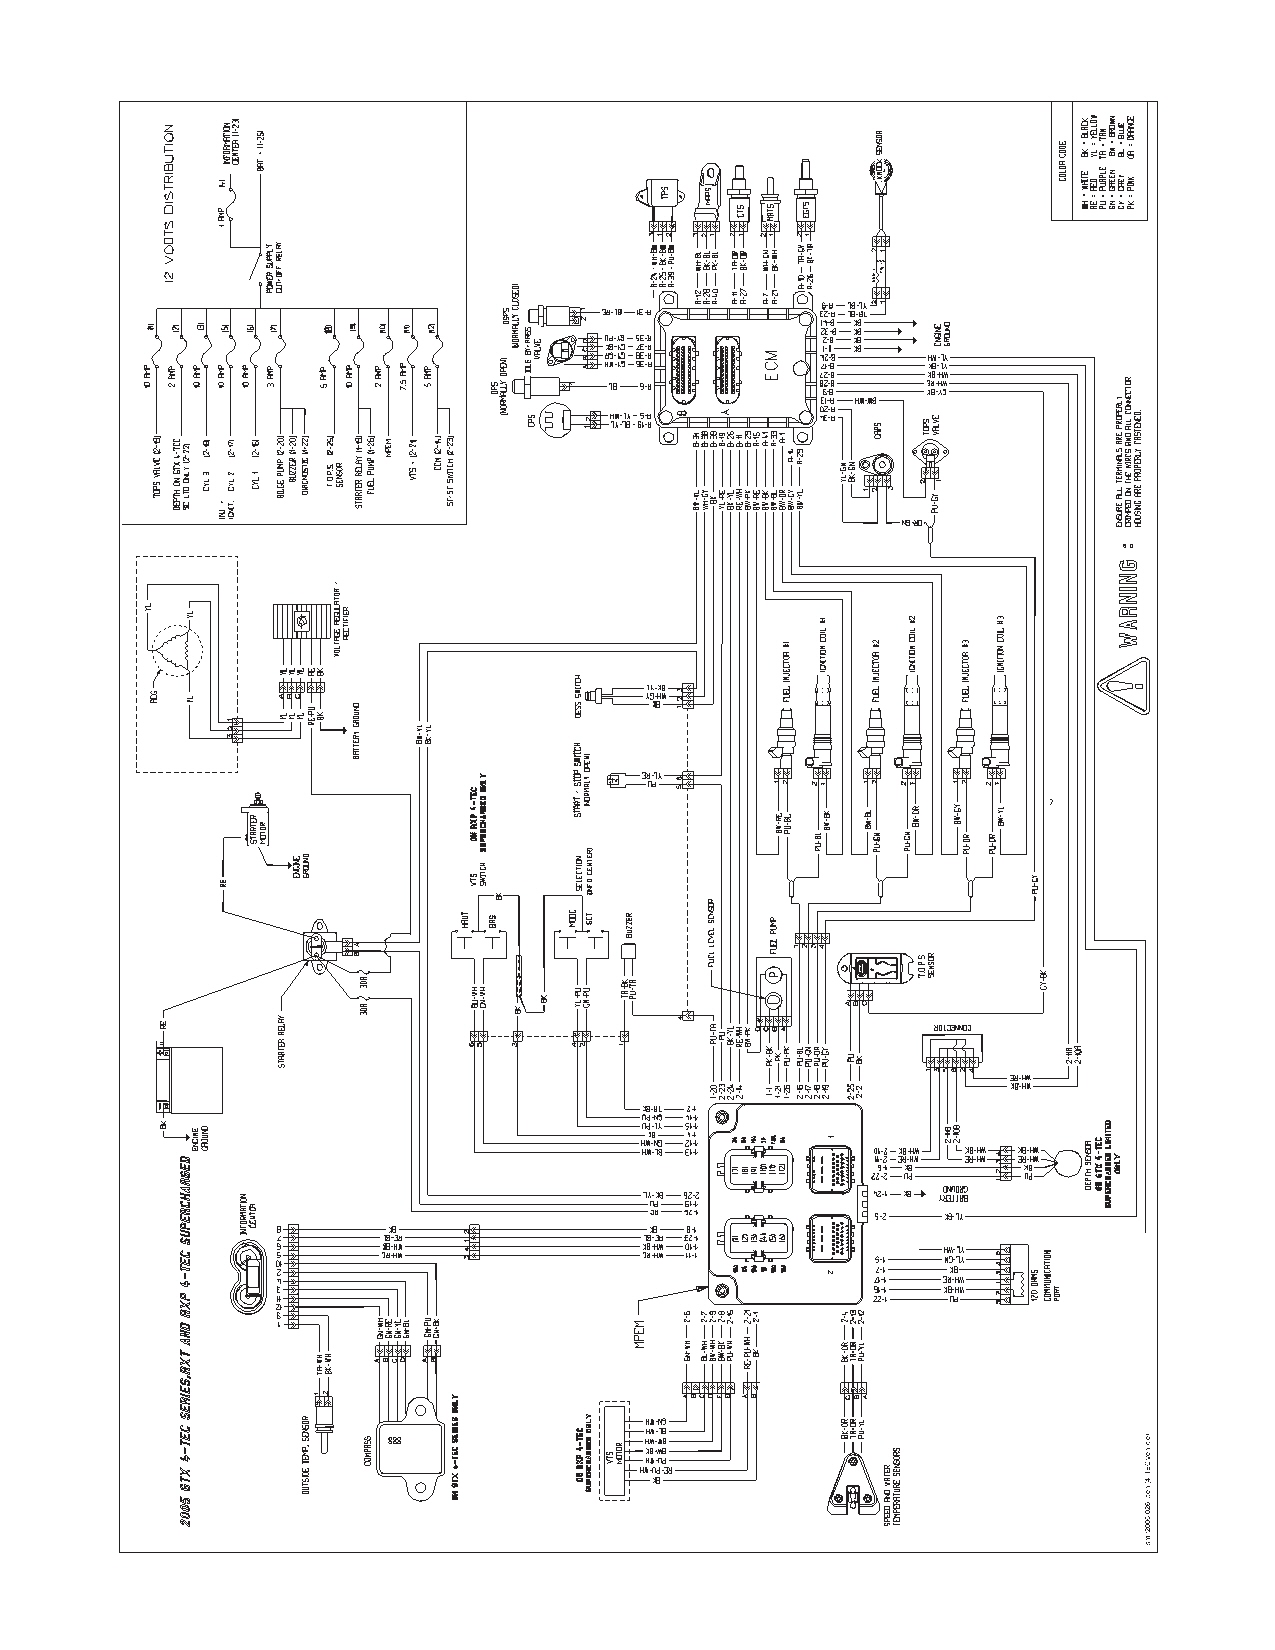 1996 sea doo gti wiring diagram